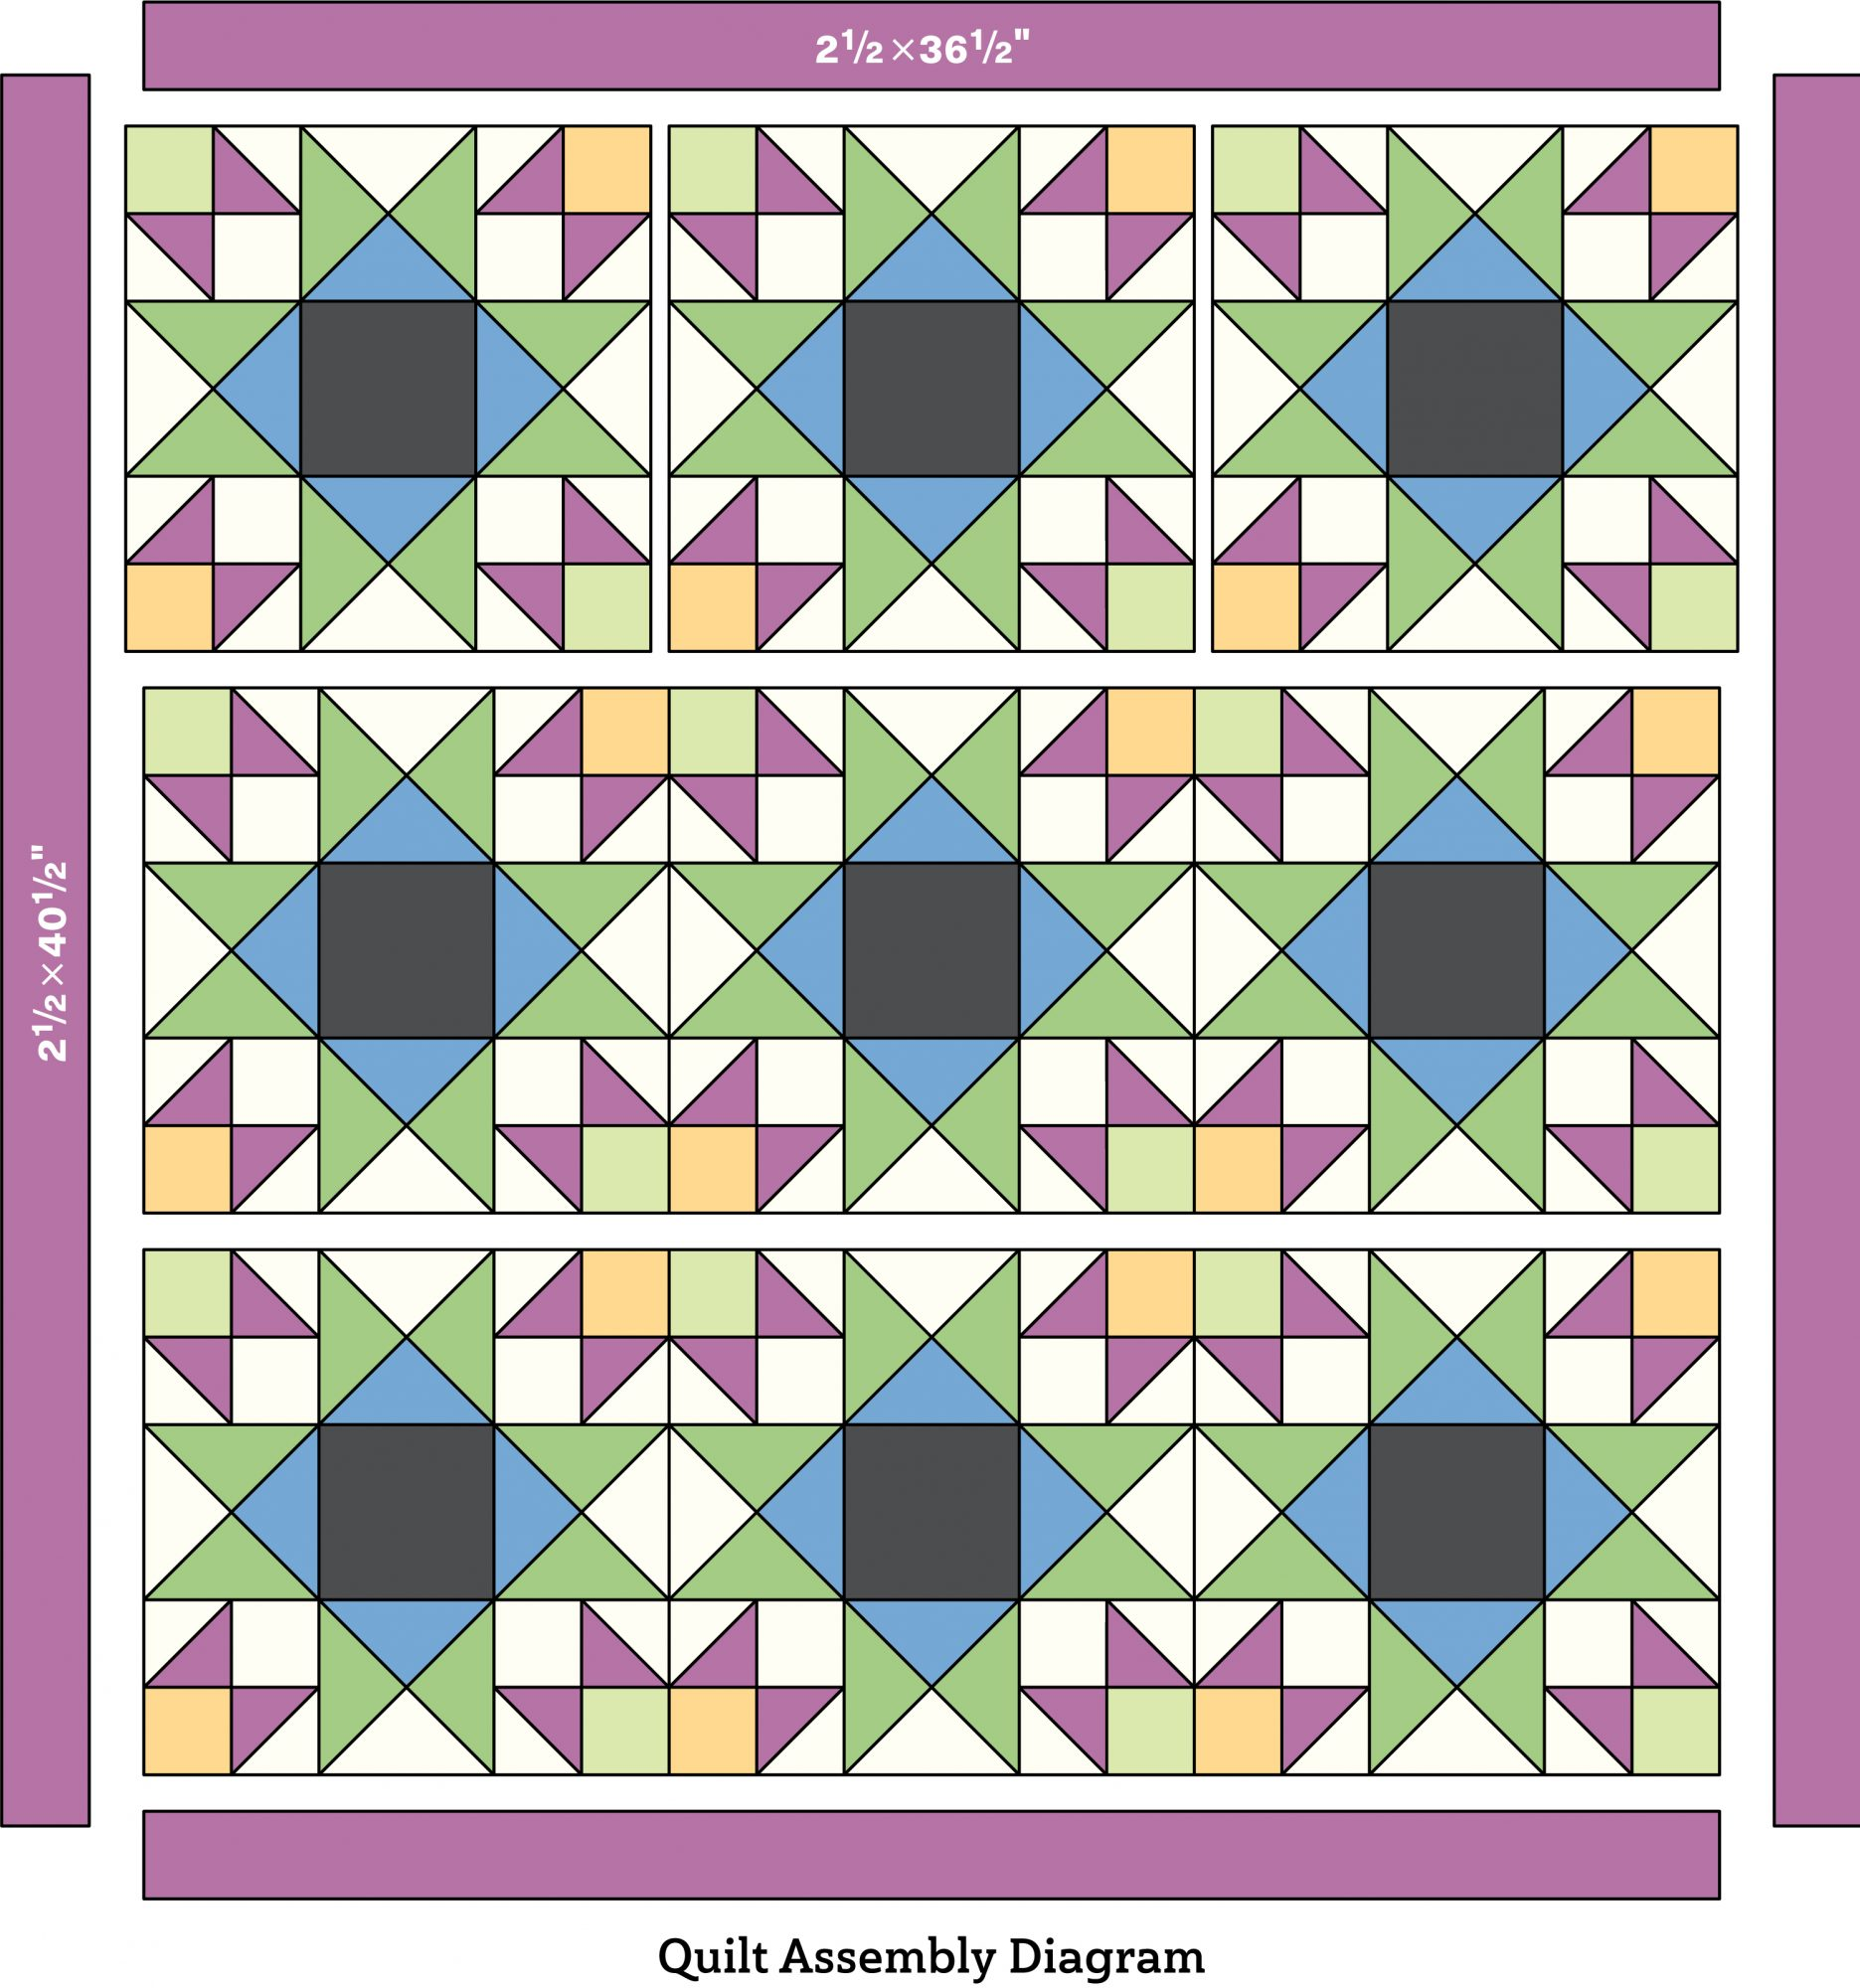 quilt assembly diagram